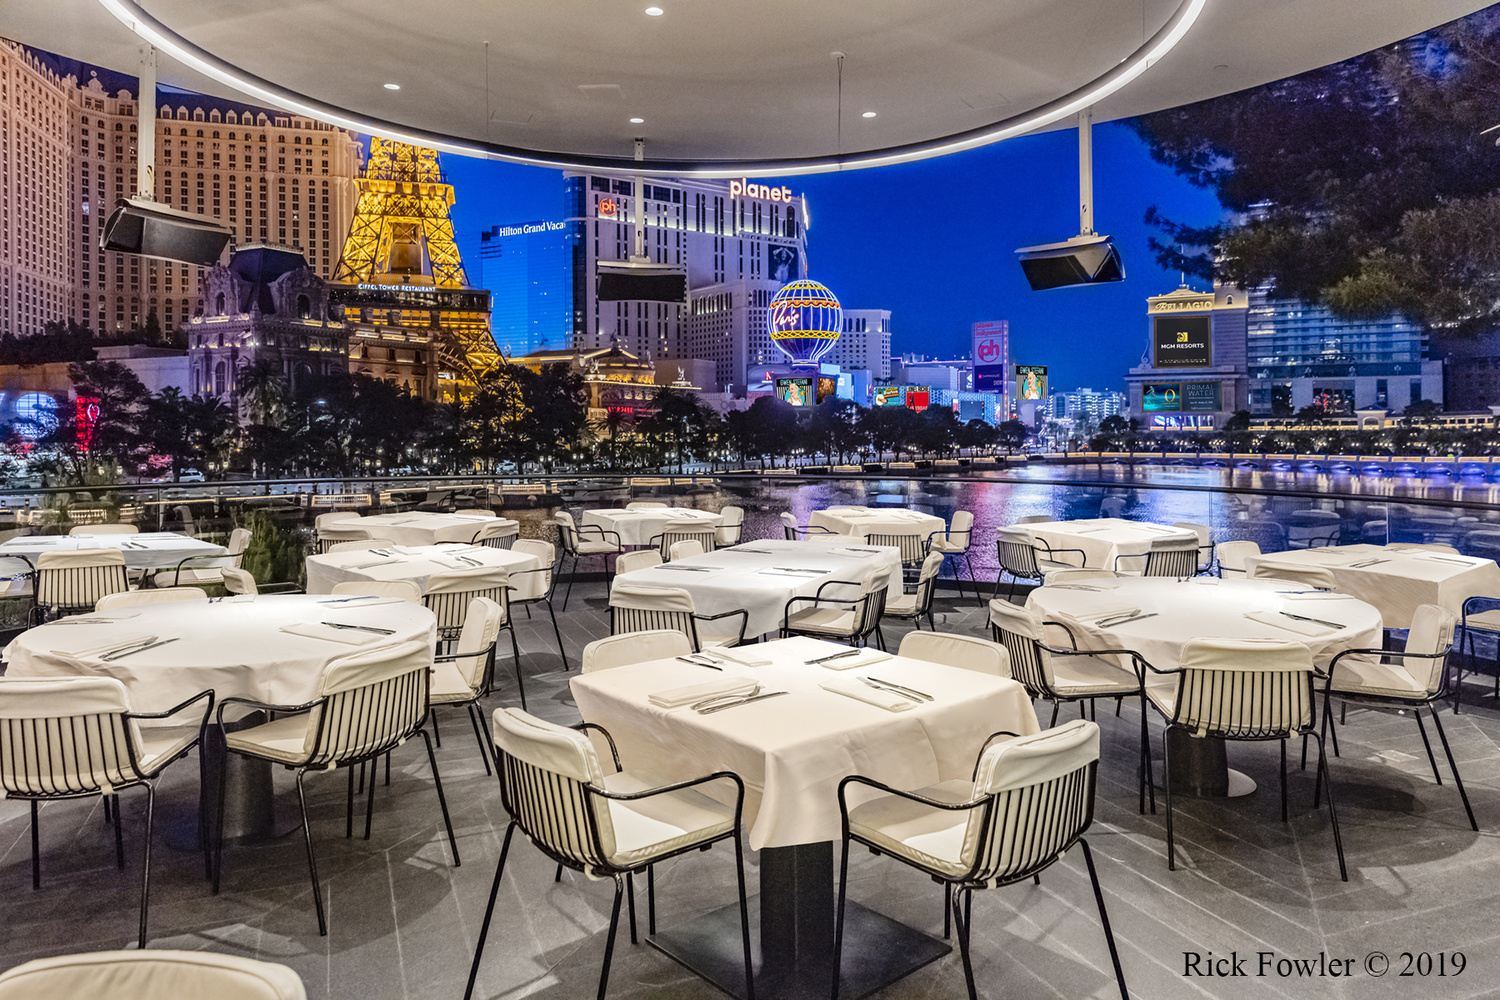 SPAGO BY WOLFGANG PUCK AT BELLAGIO HOTEL & CASINO by Rick Fowler